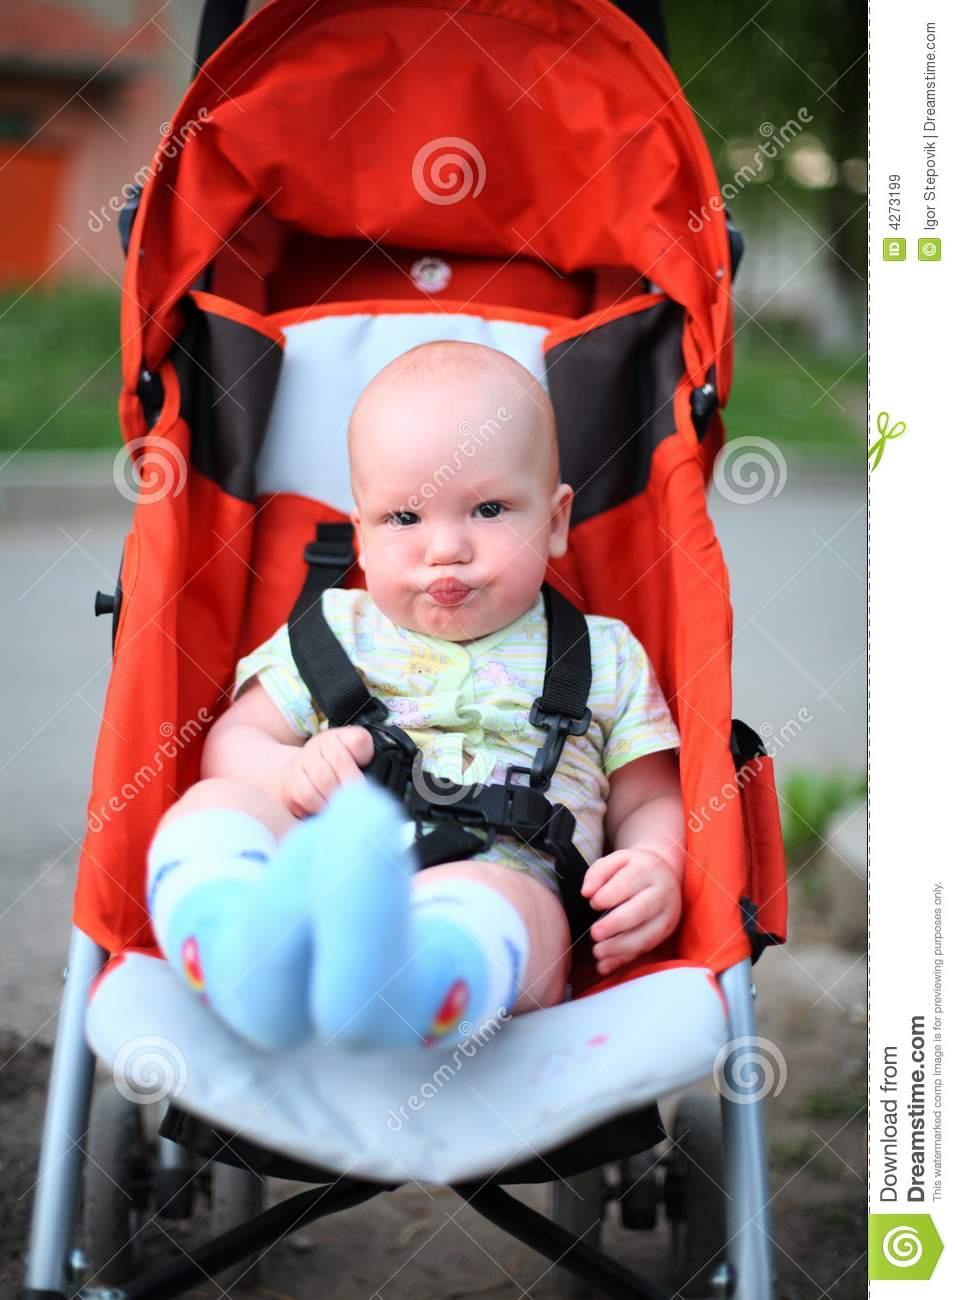 Baby In Sitting Stroller Royalty Free Stock Images - Image: 4273199